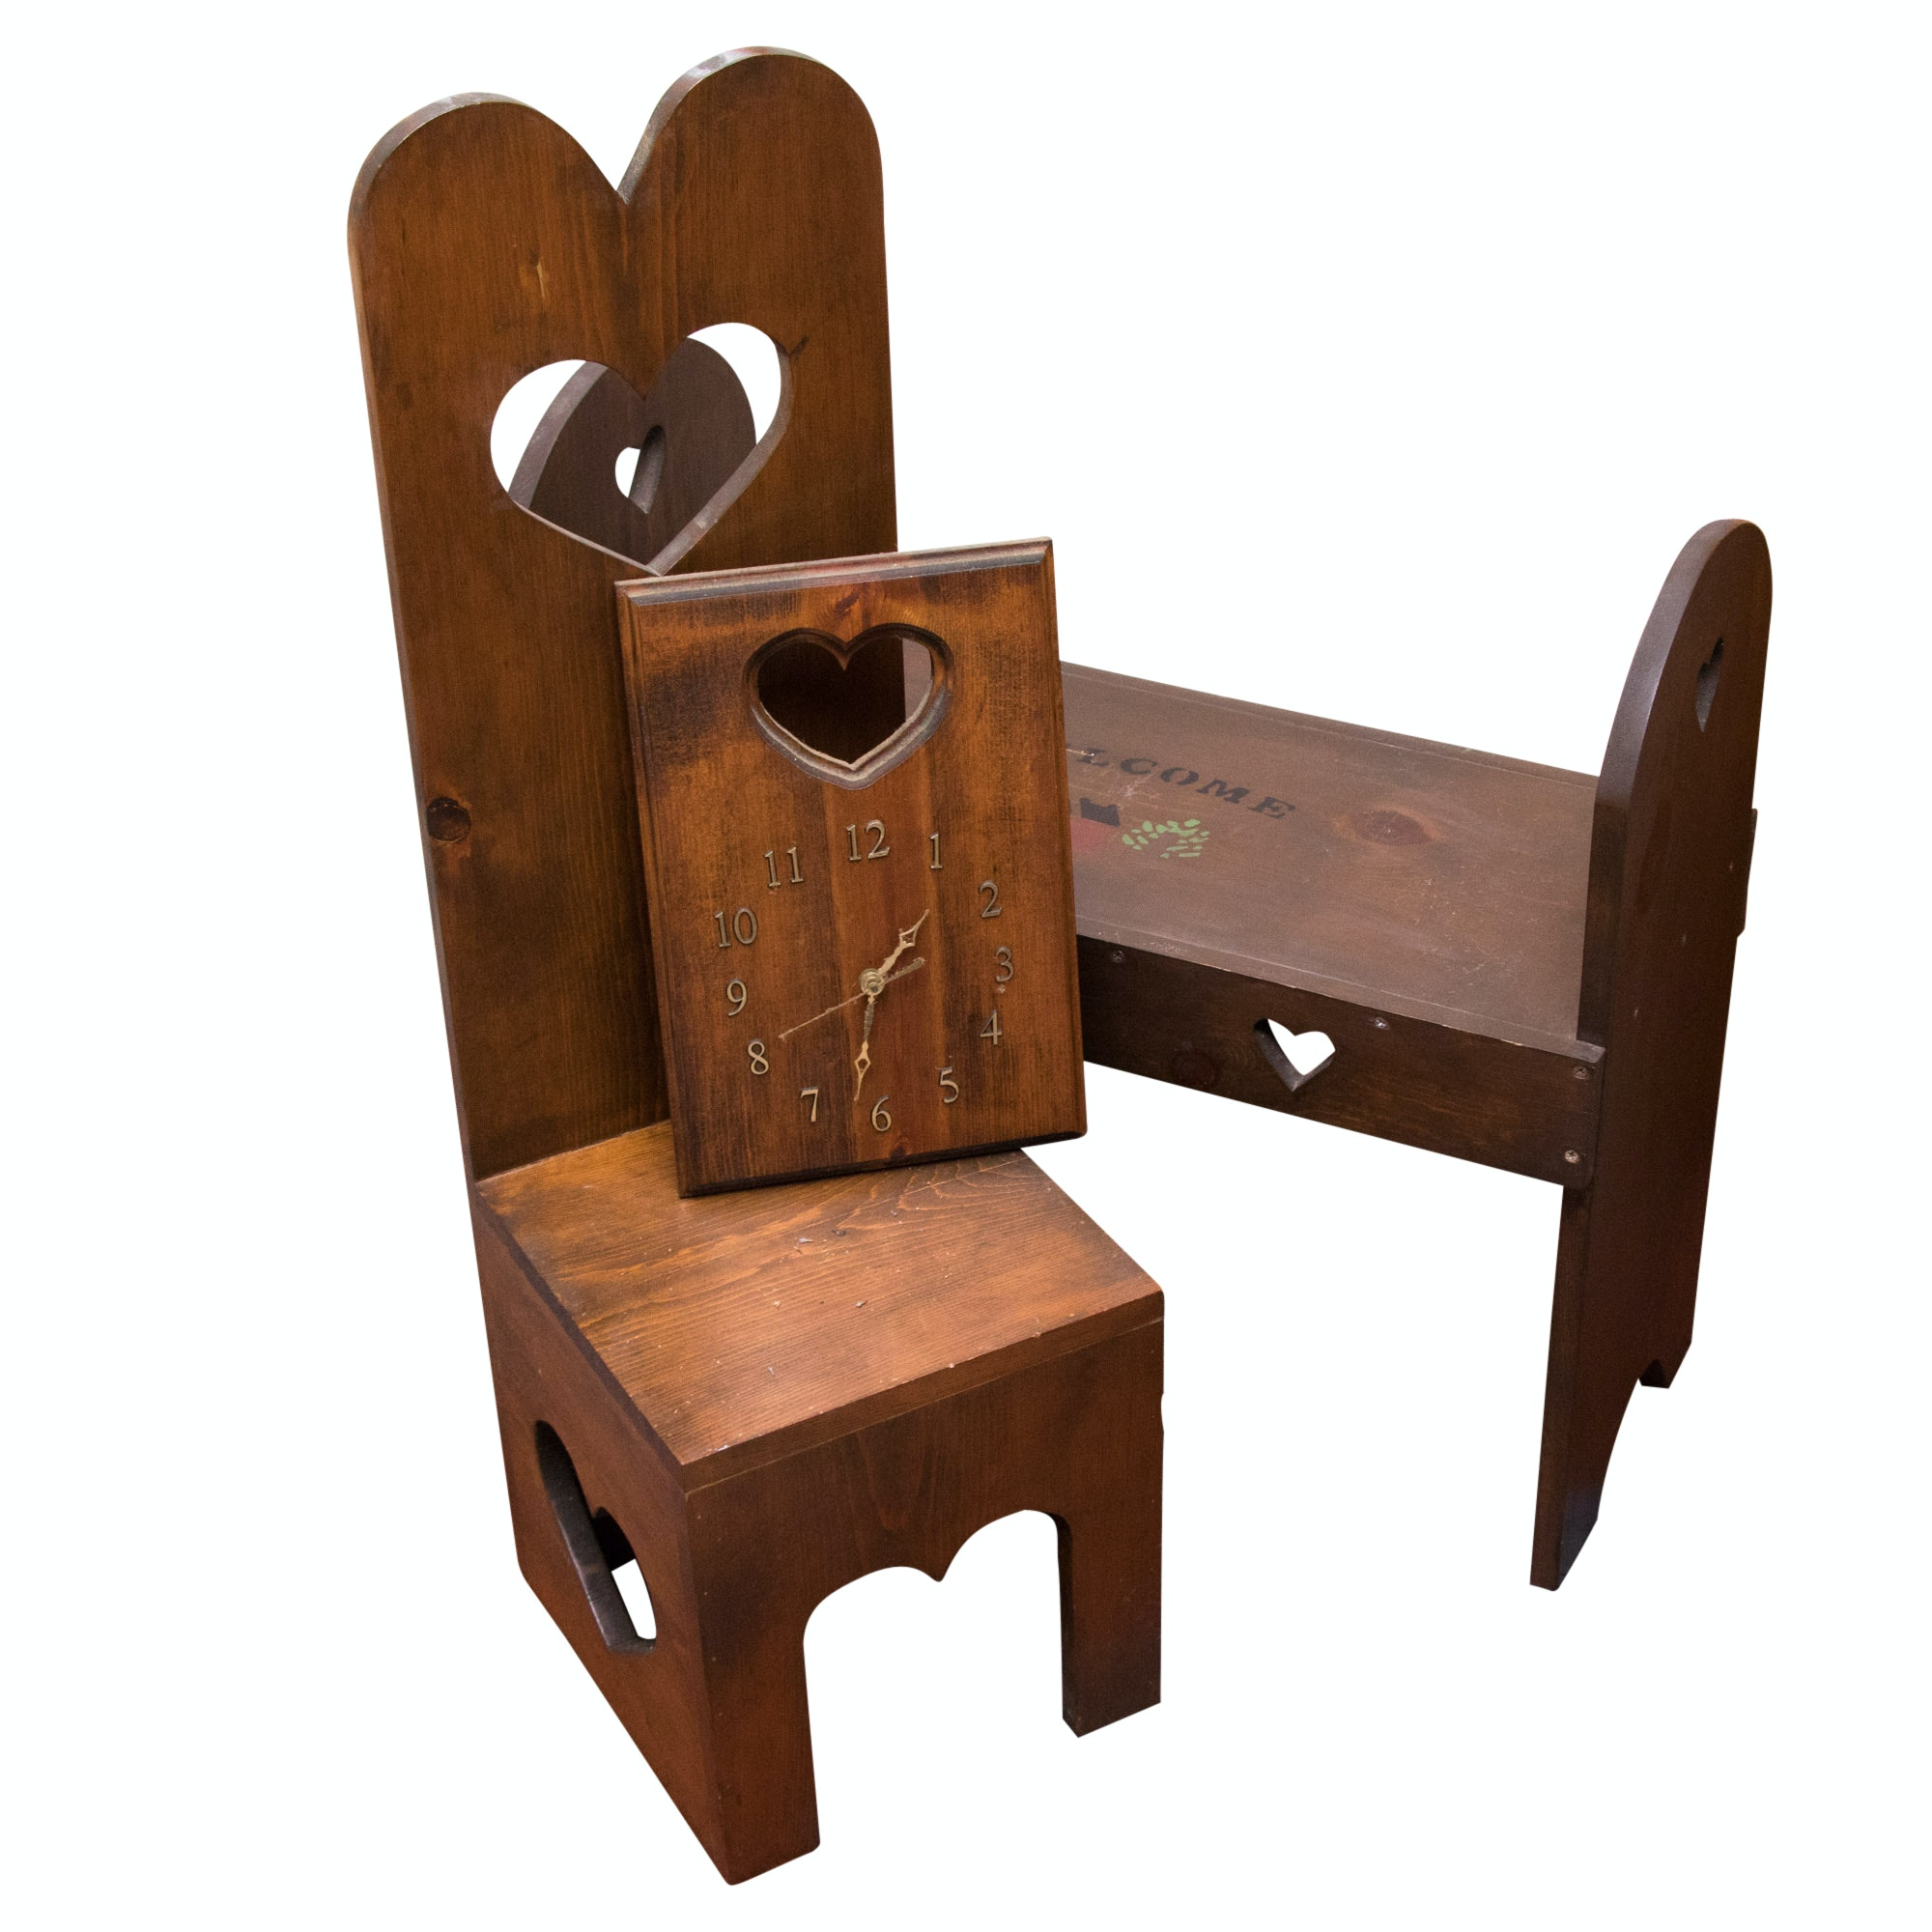 Rustic Pine Bench, Clock and Chair with Heart, Late 20th Century